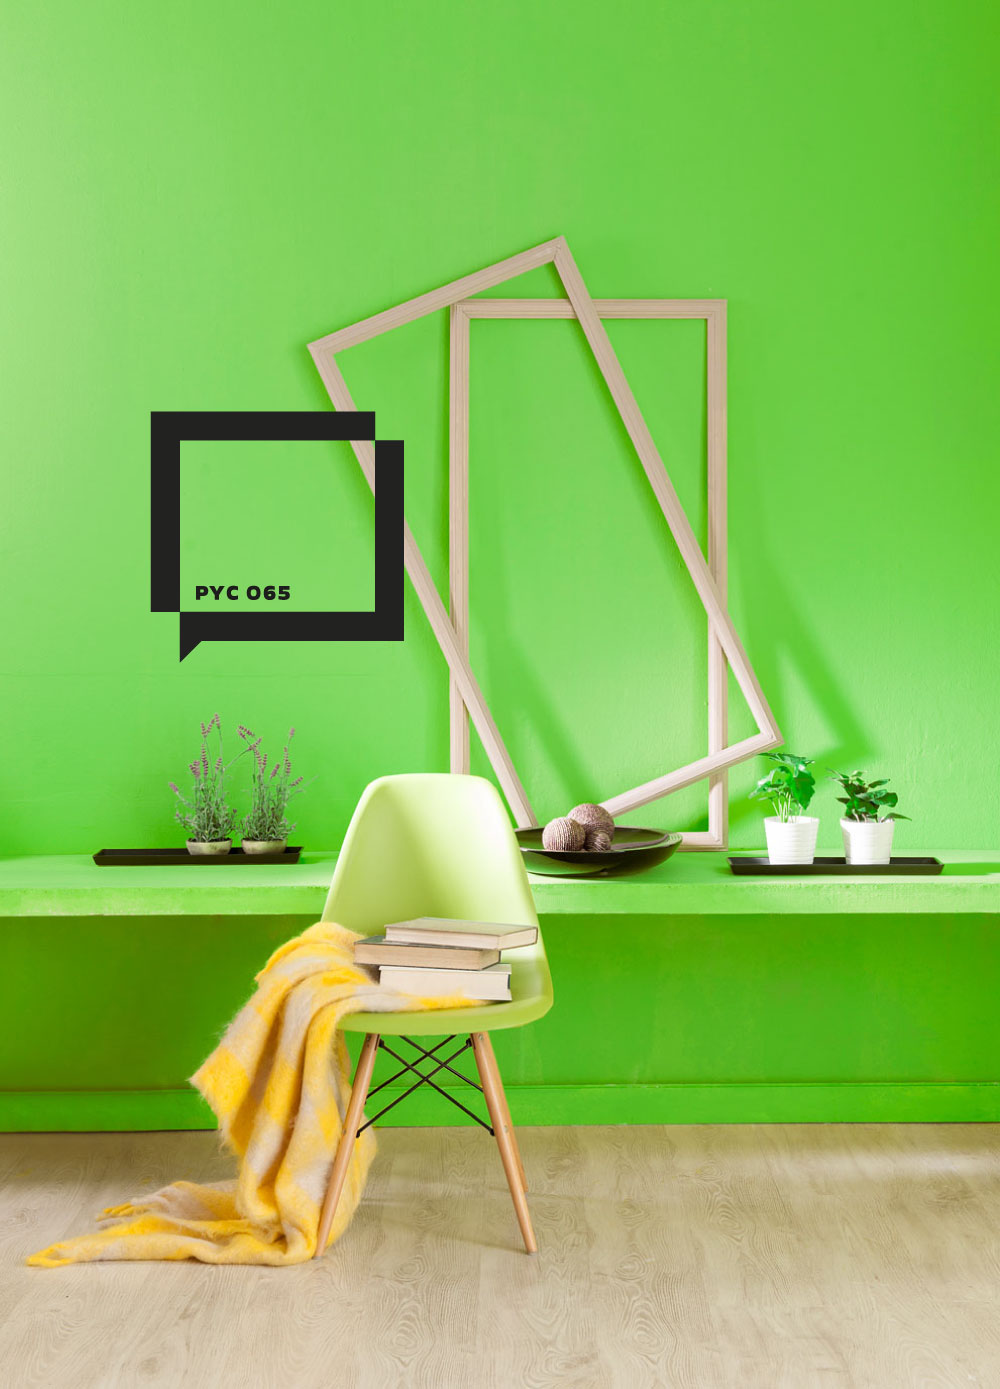 pyc065_isaval_color_verde_deco